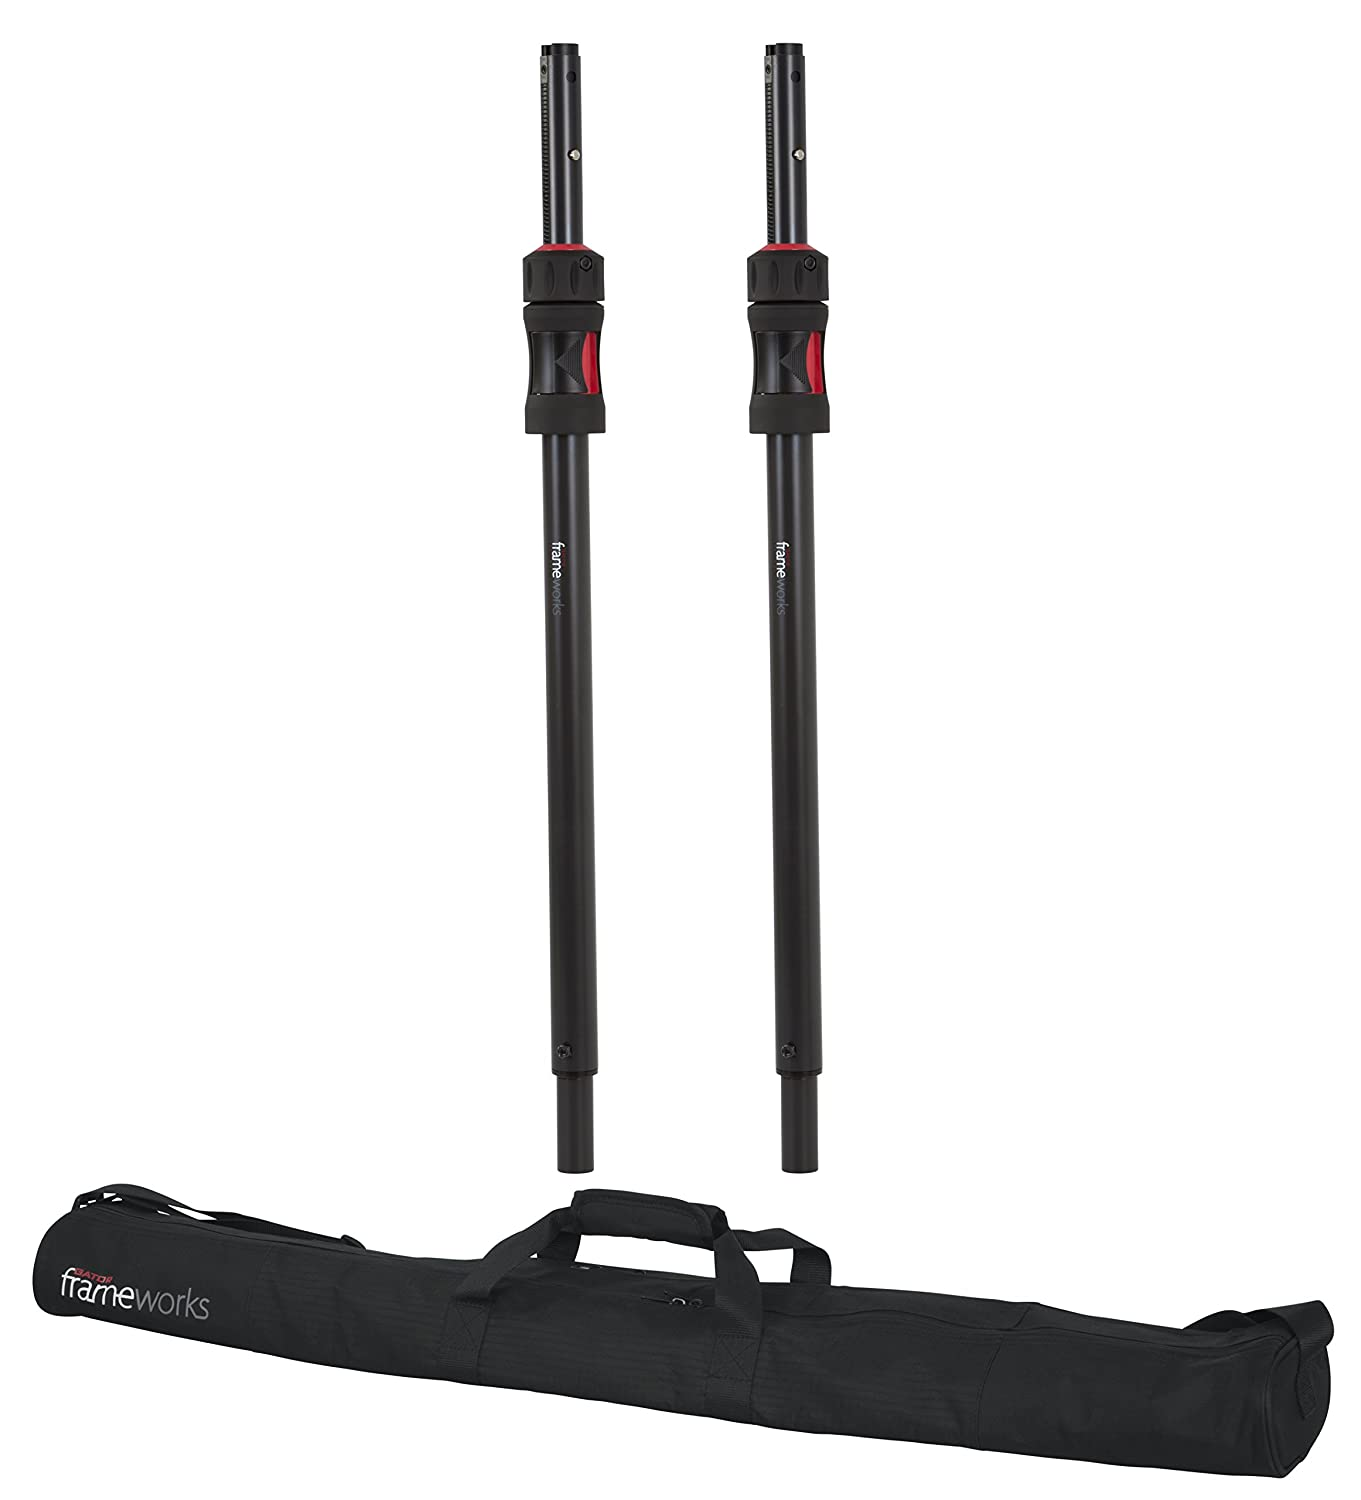 Gator Frameworks ID Series Speaker Sub Poles Set with Padded Nylon Carry Bag; Set of 2 Stands (GFW-ID-SPKR-SPSET) Gator Cases